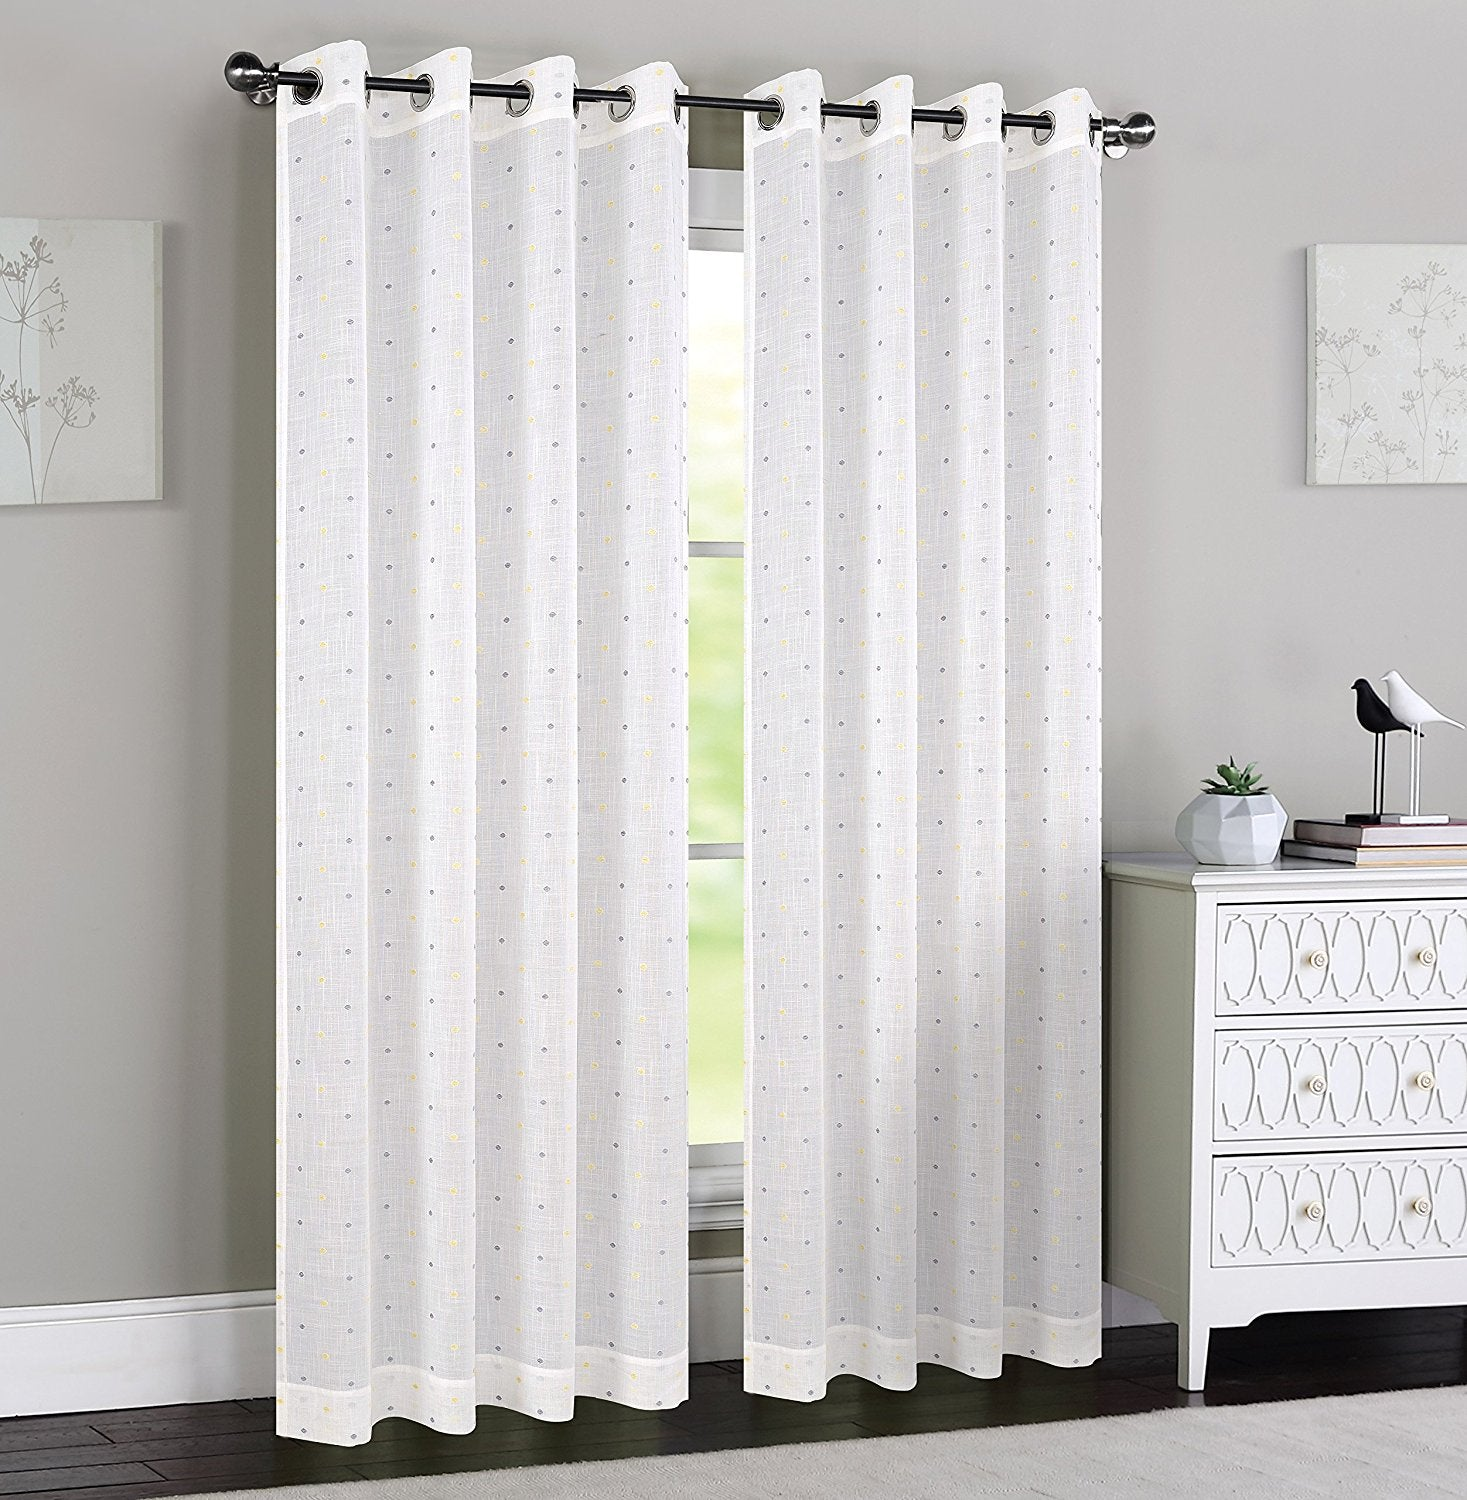 Madeline Sheer Curtain Panels with Grommets - 4 Colors